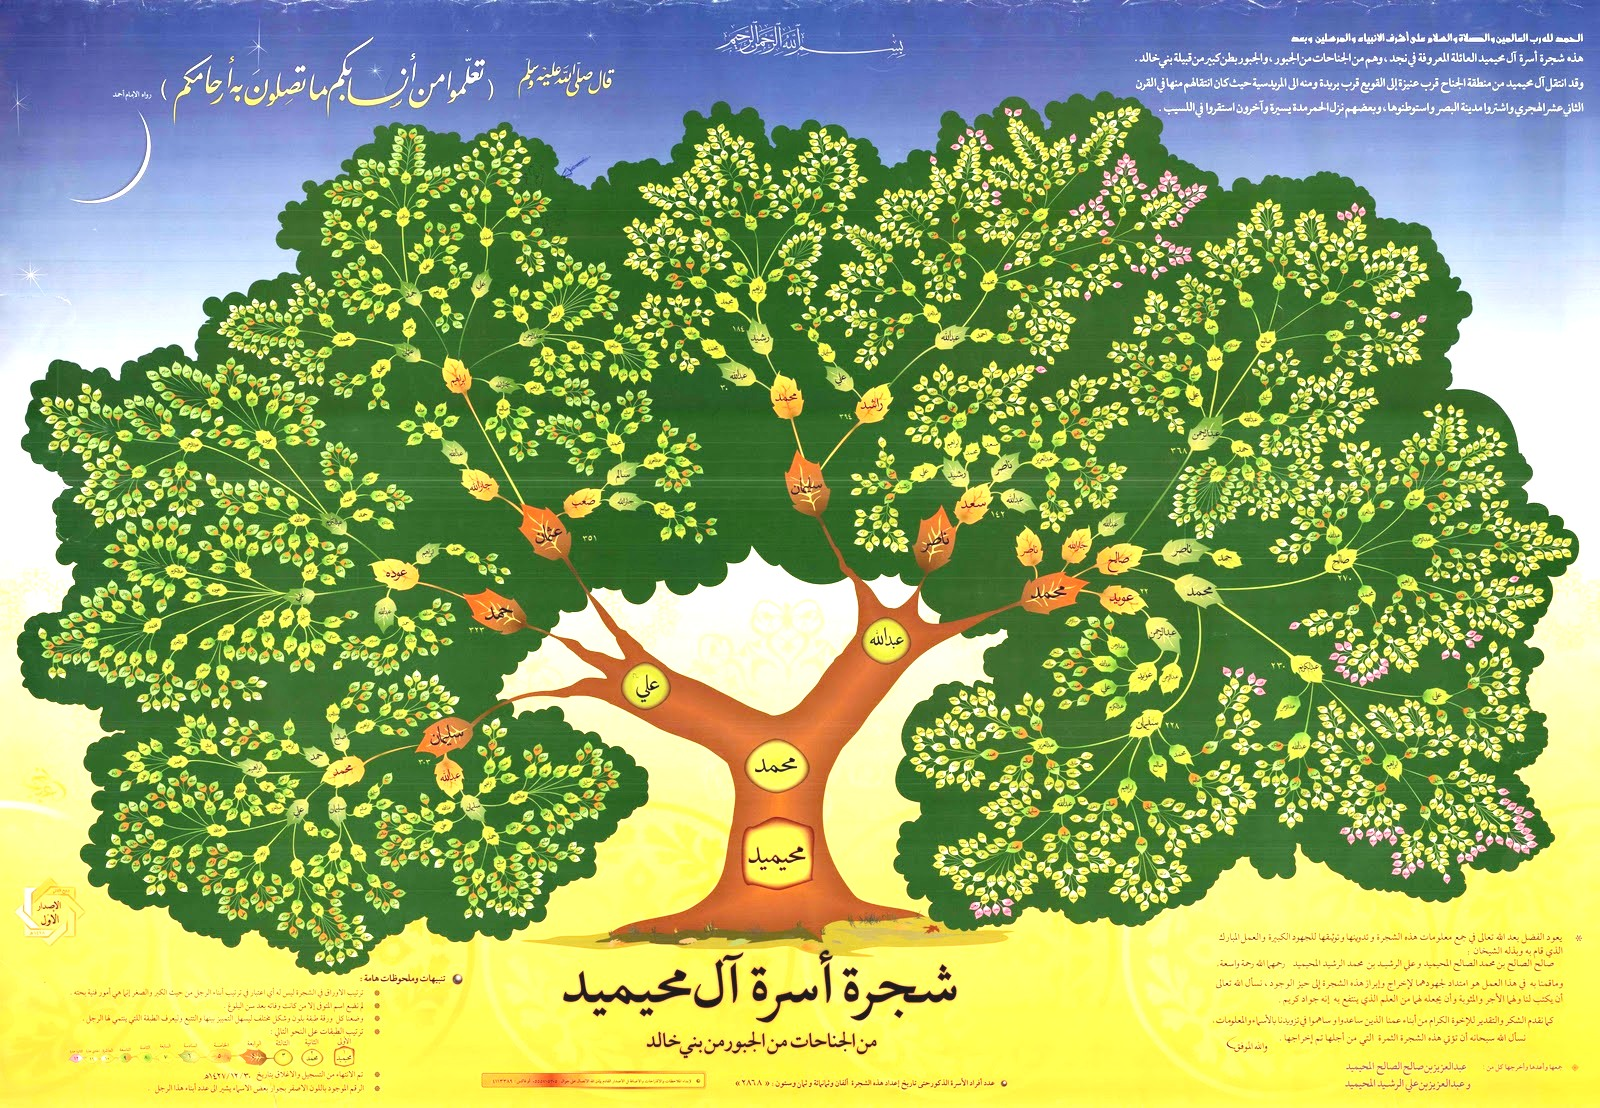 م ك ت ب ة ع ل و م الن س ب Genealogical Library Science